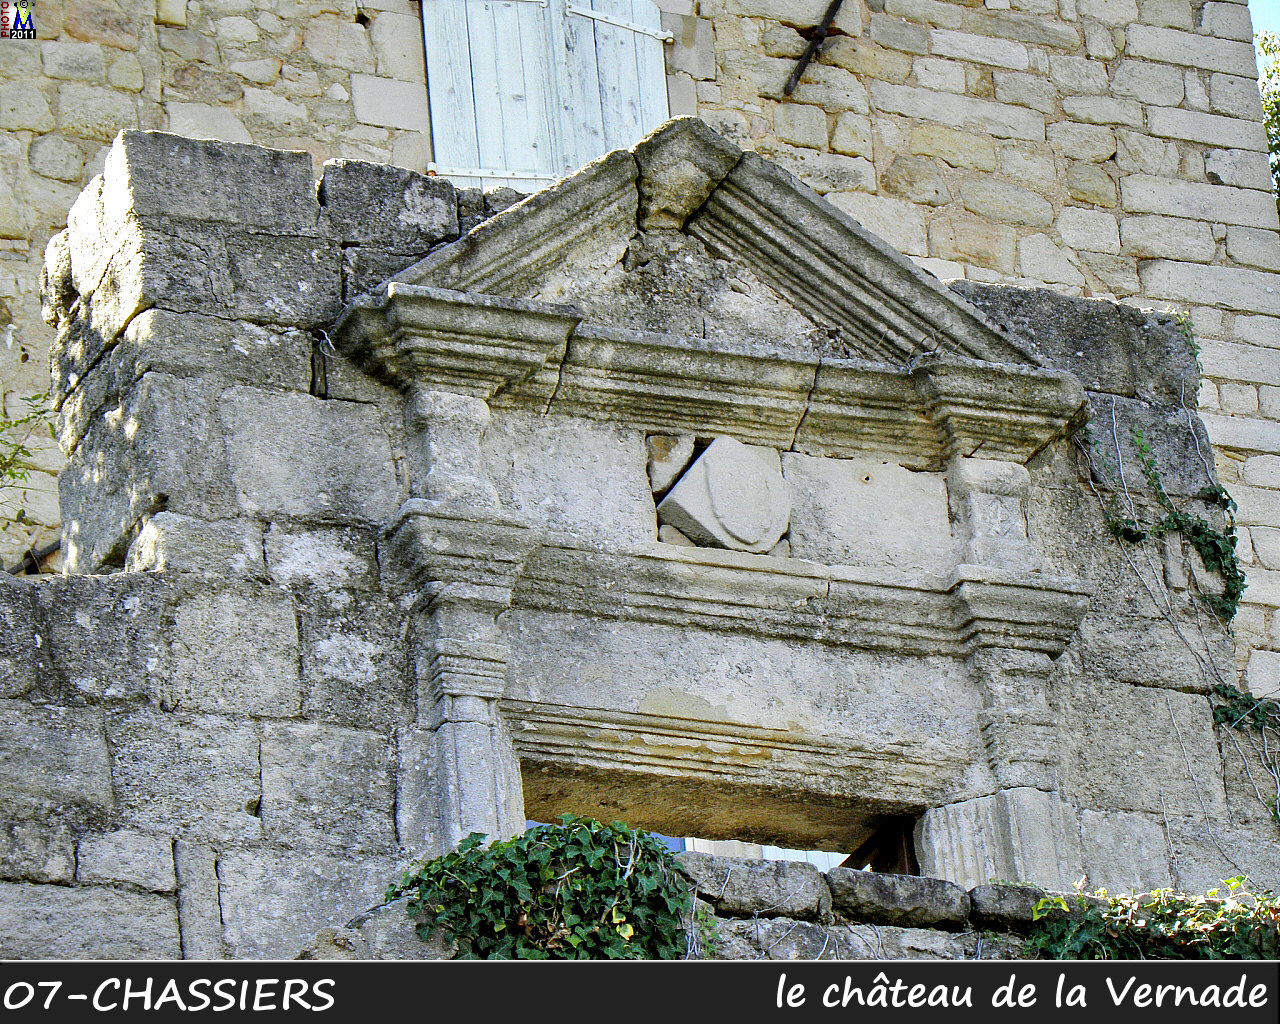 07CHASSIERS_chateau_104.jpg